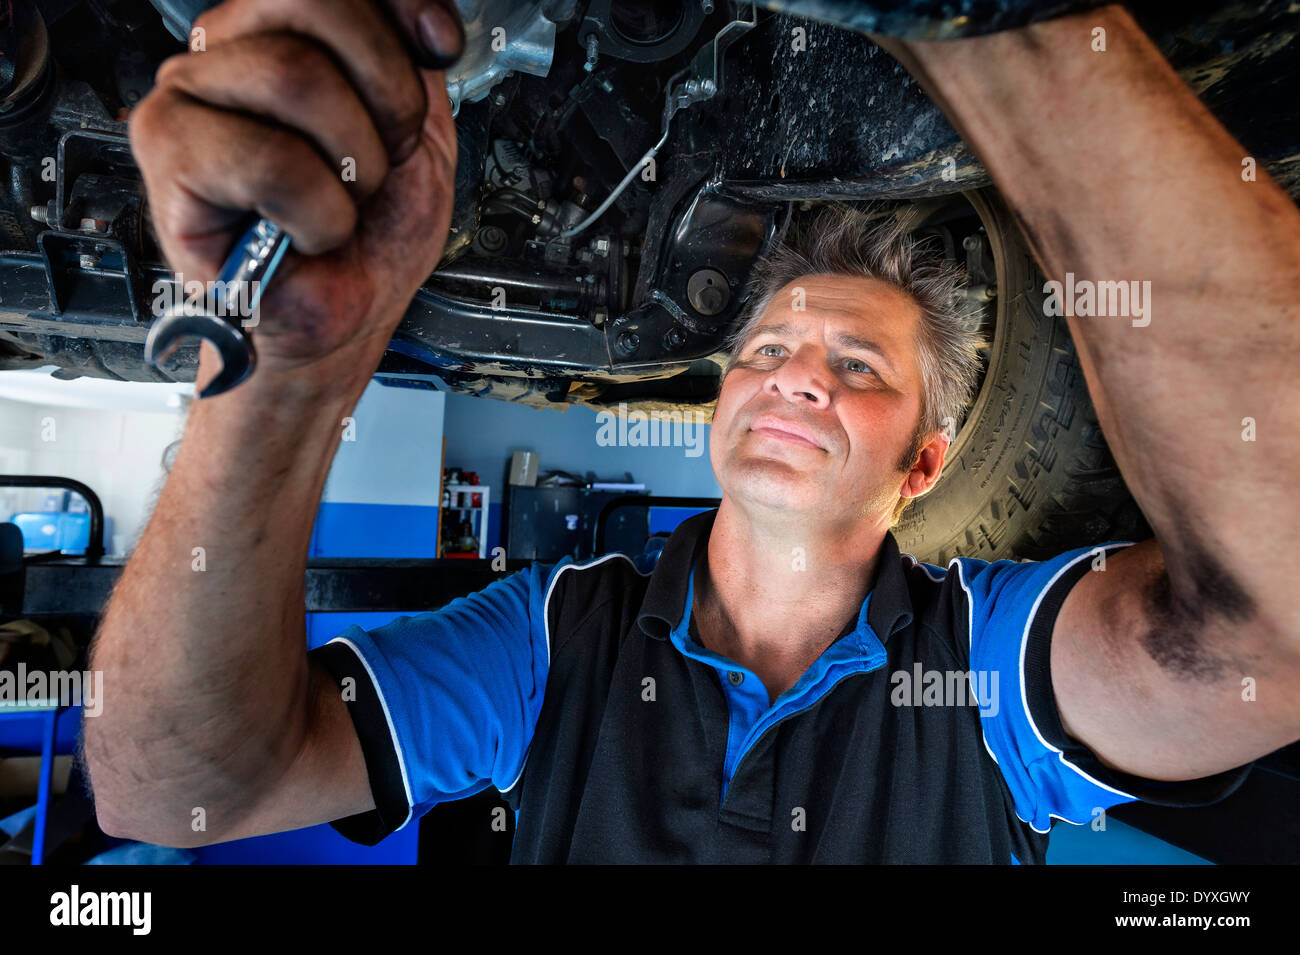 Mechanic working under car - Stock Image